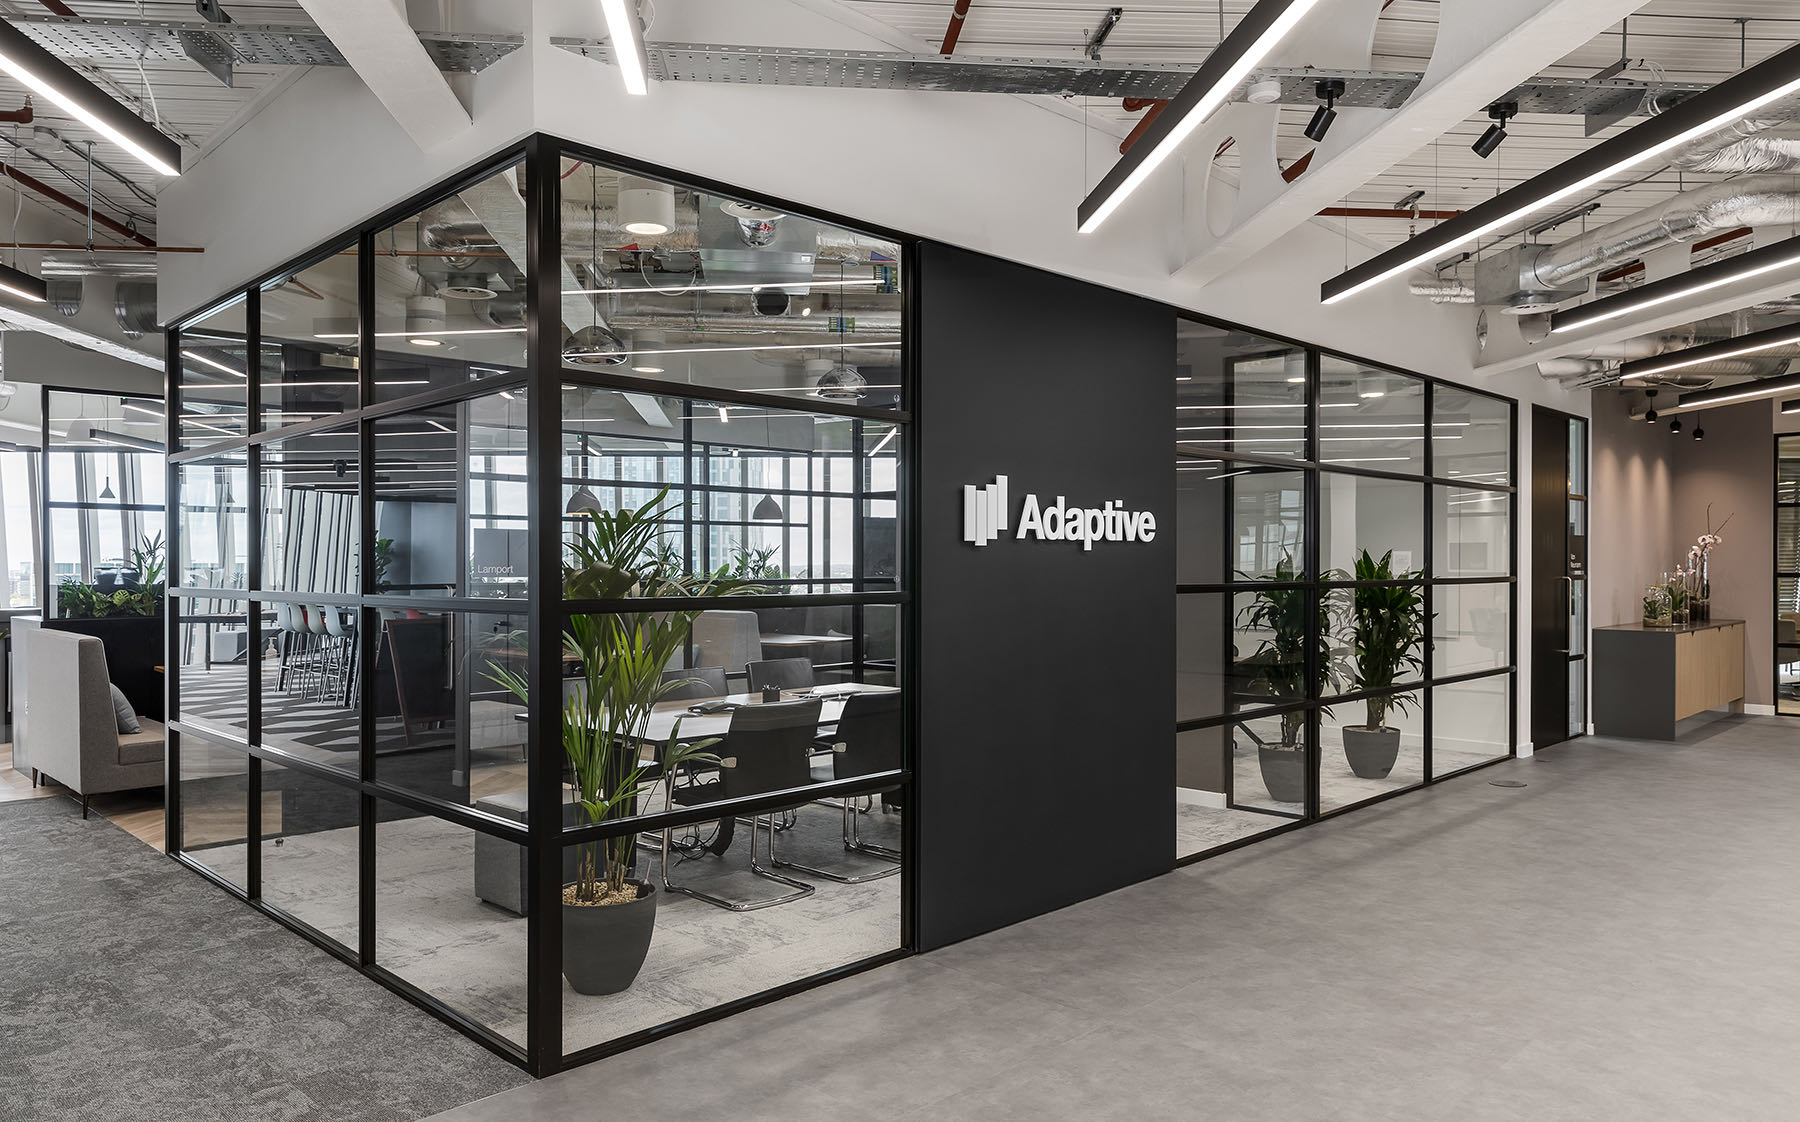 adaptive-financial-consulting-london-1